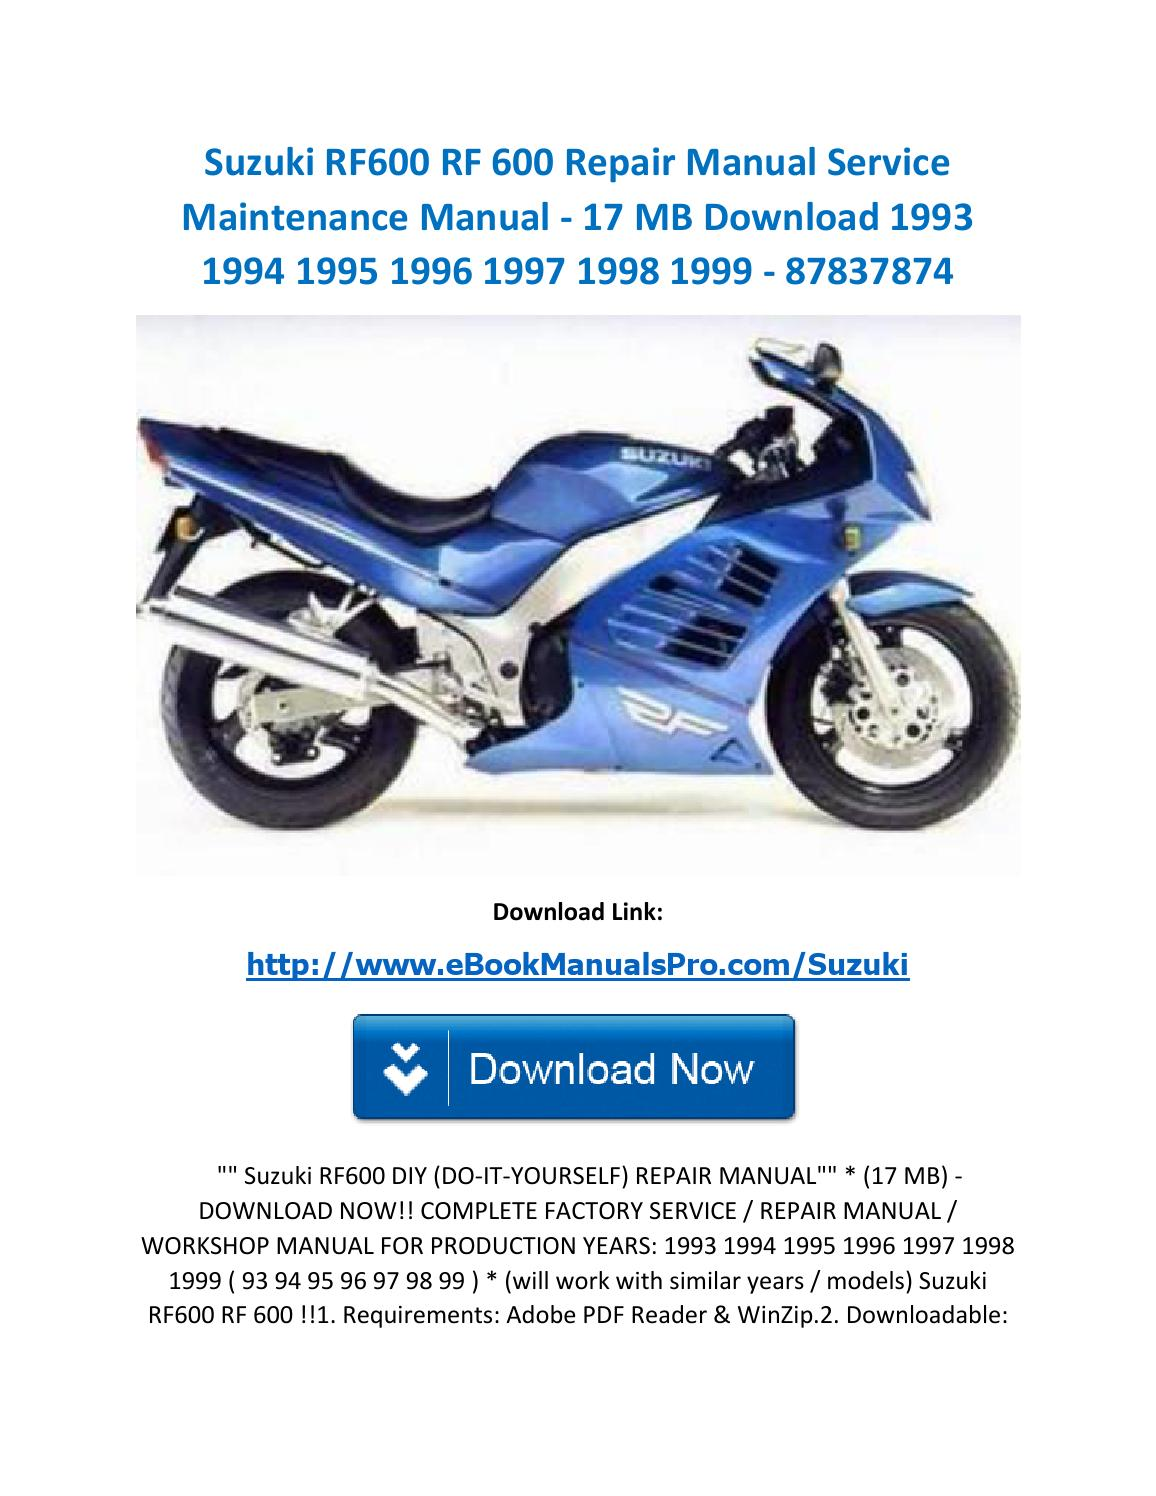 suzuki rf600 rf 600 repair manual service maintenance manual 17 mb download 1993 1994 1995 1996